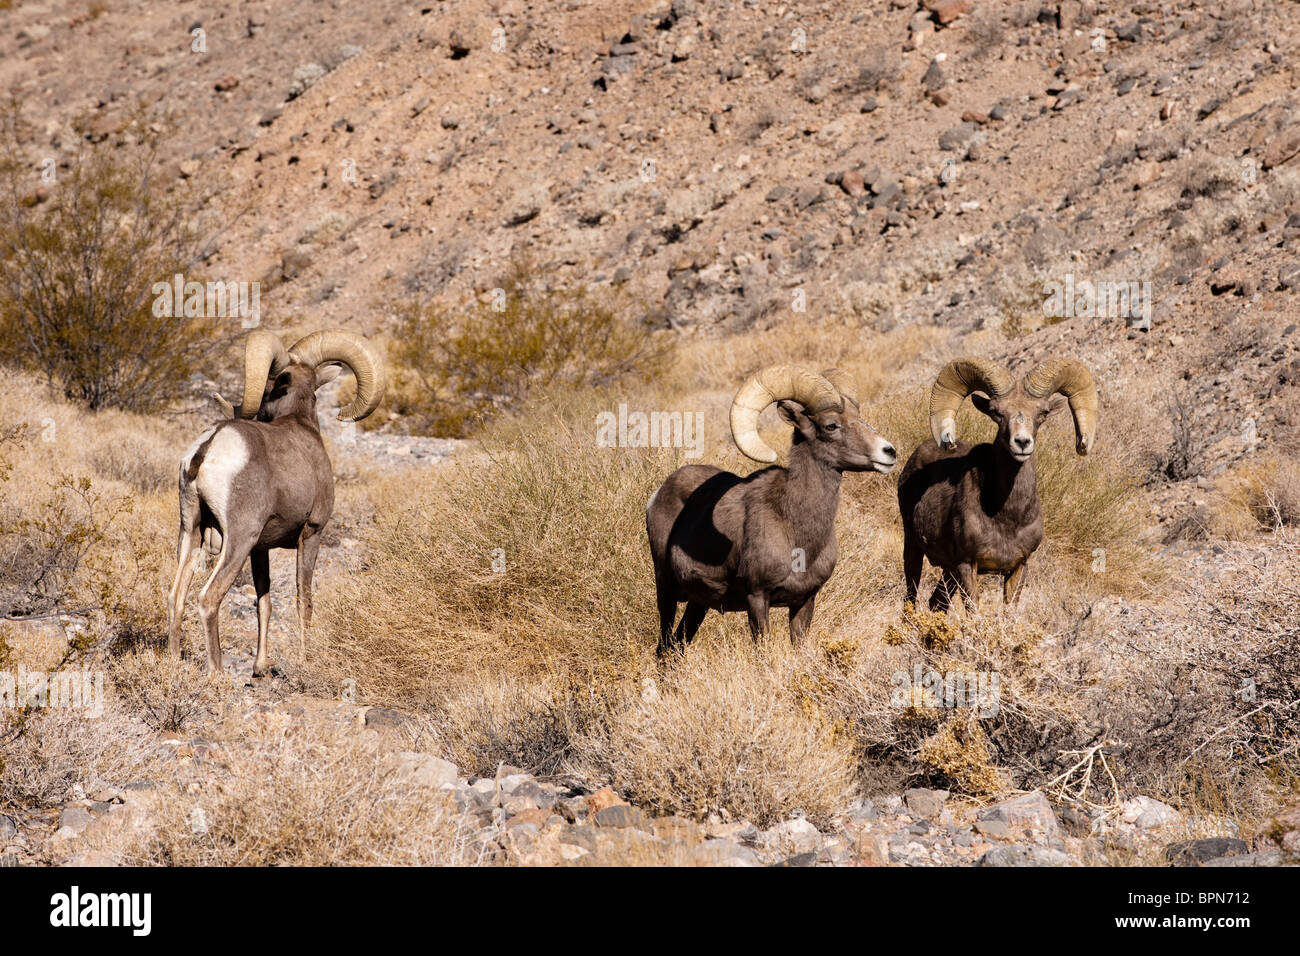 Bighorn sheep, Ovis canadensis, Death Valley National Park, California, USA - Stock Image